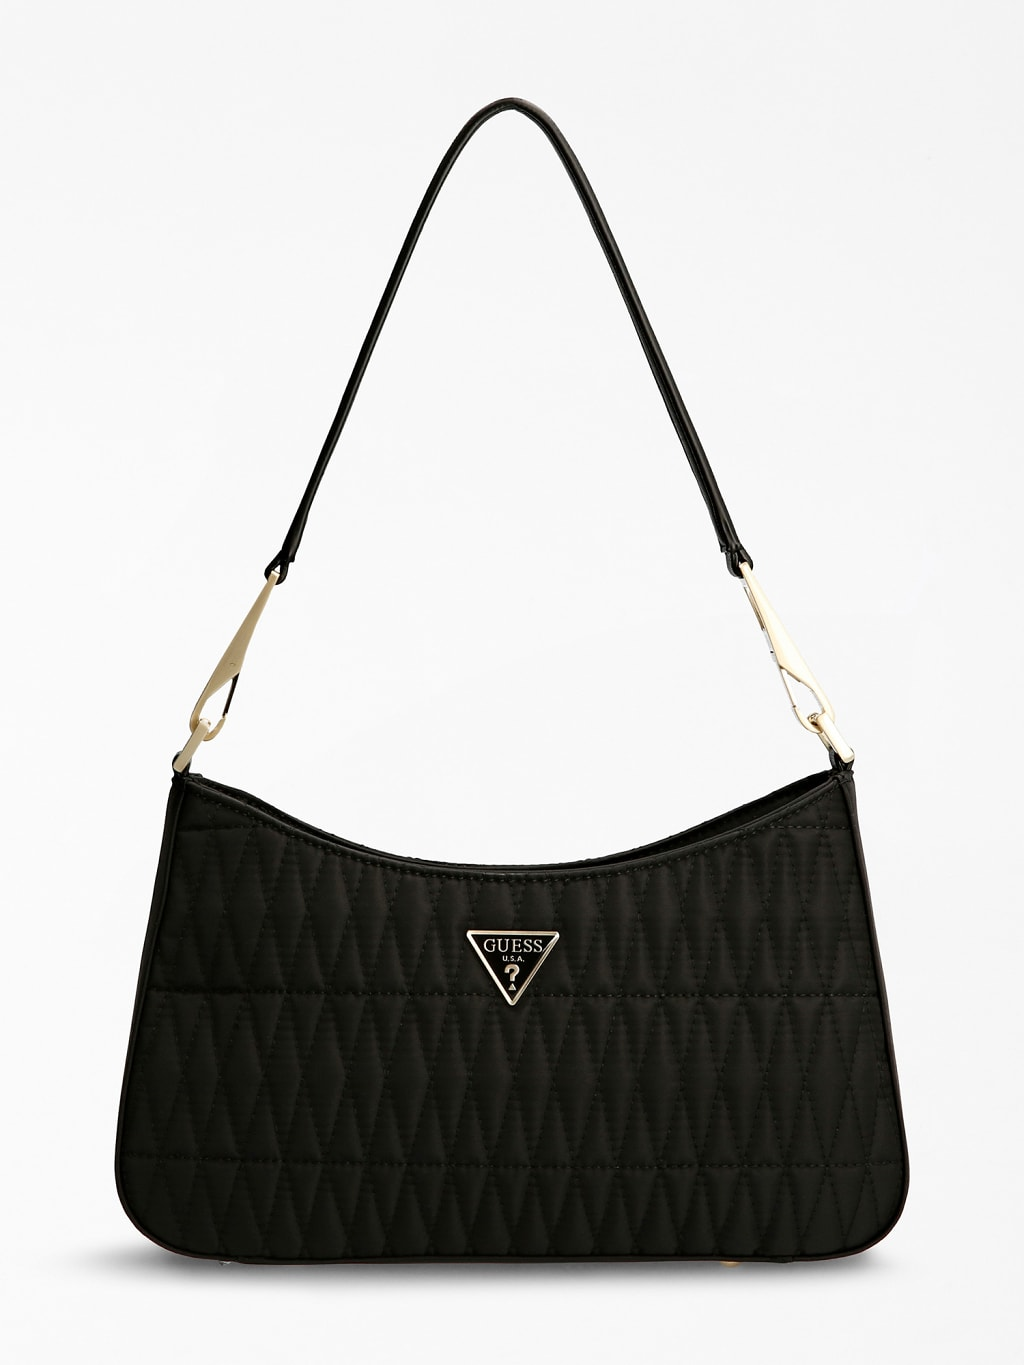 Layla Quilted Shoulder Bag, £95, GUESS